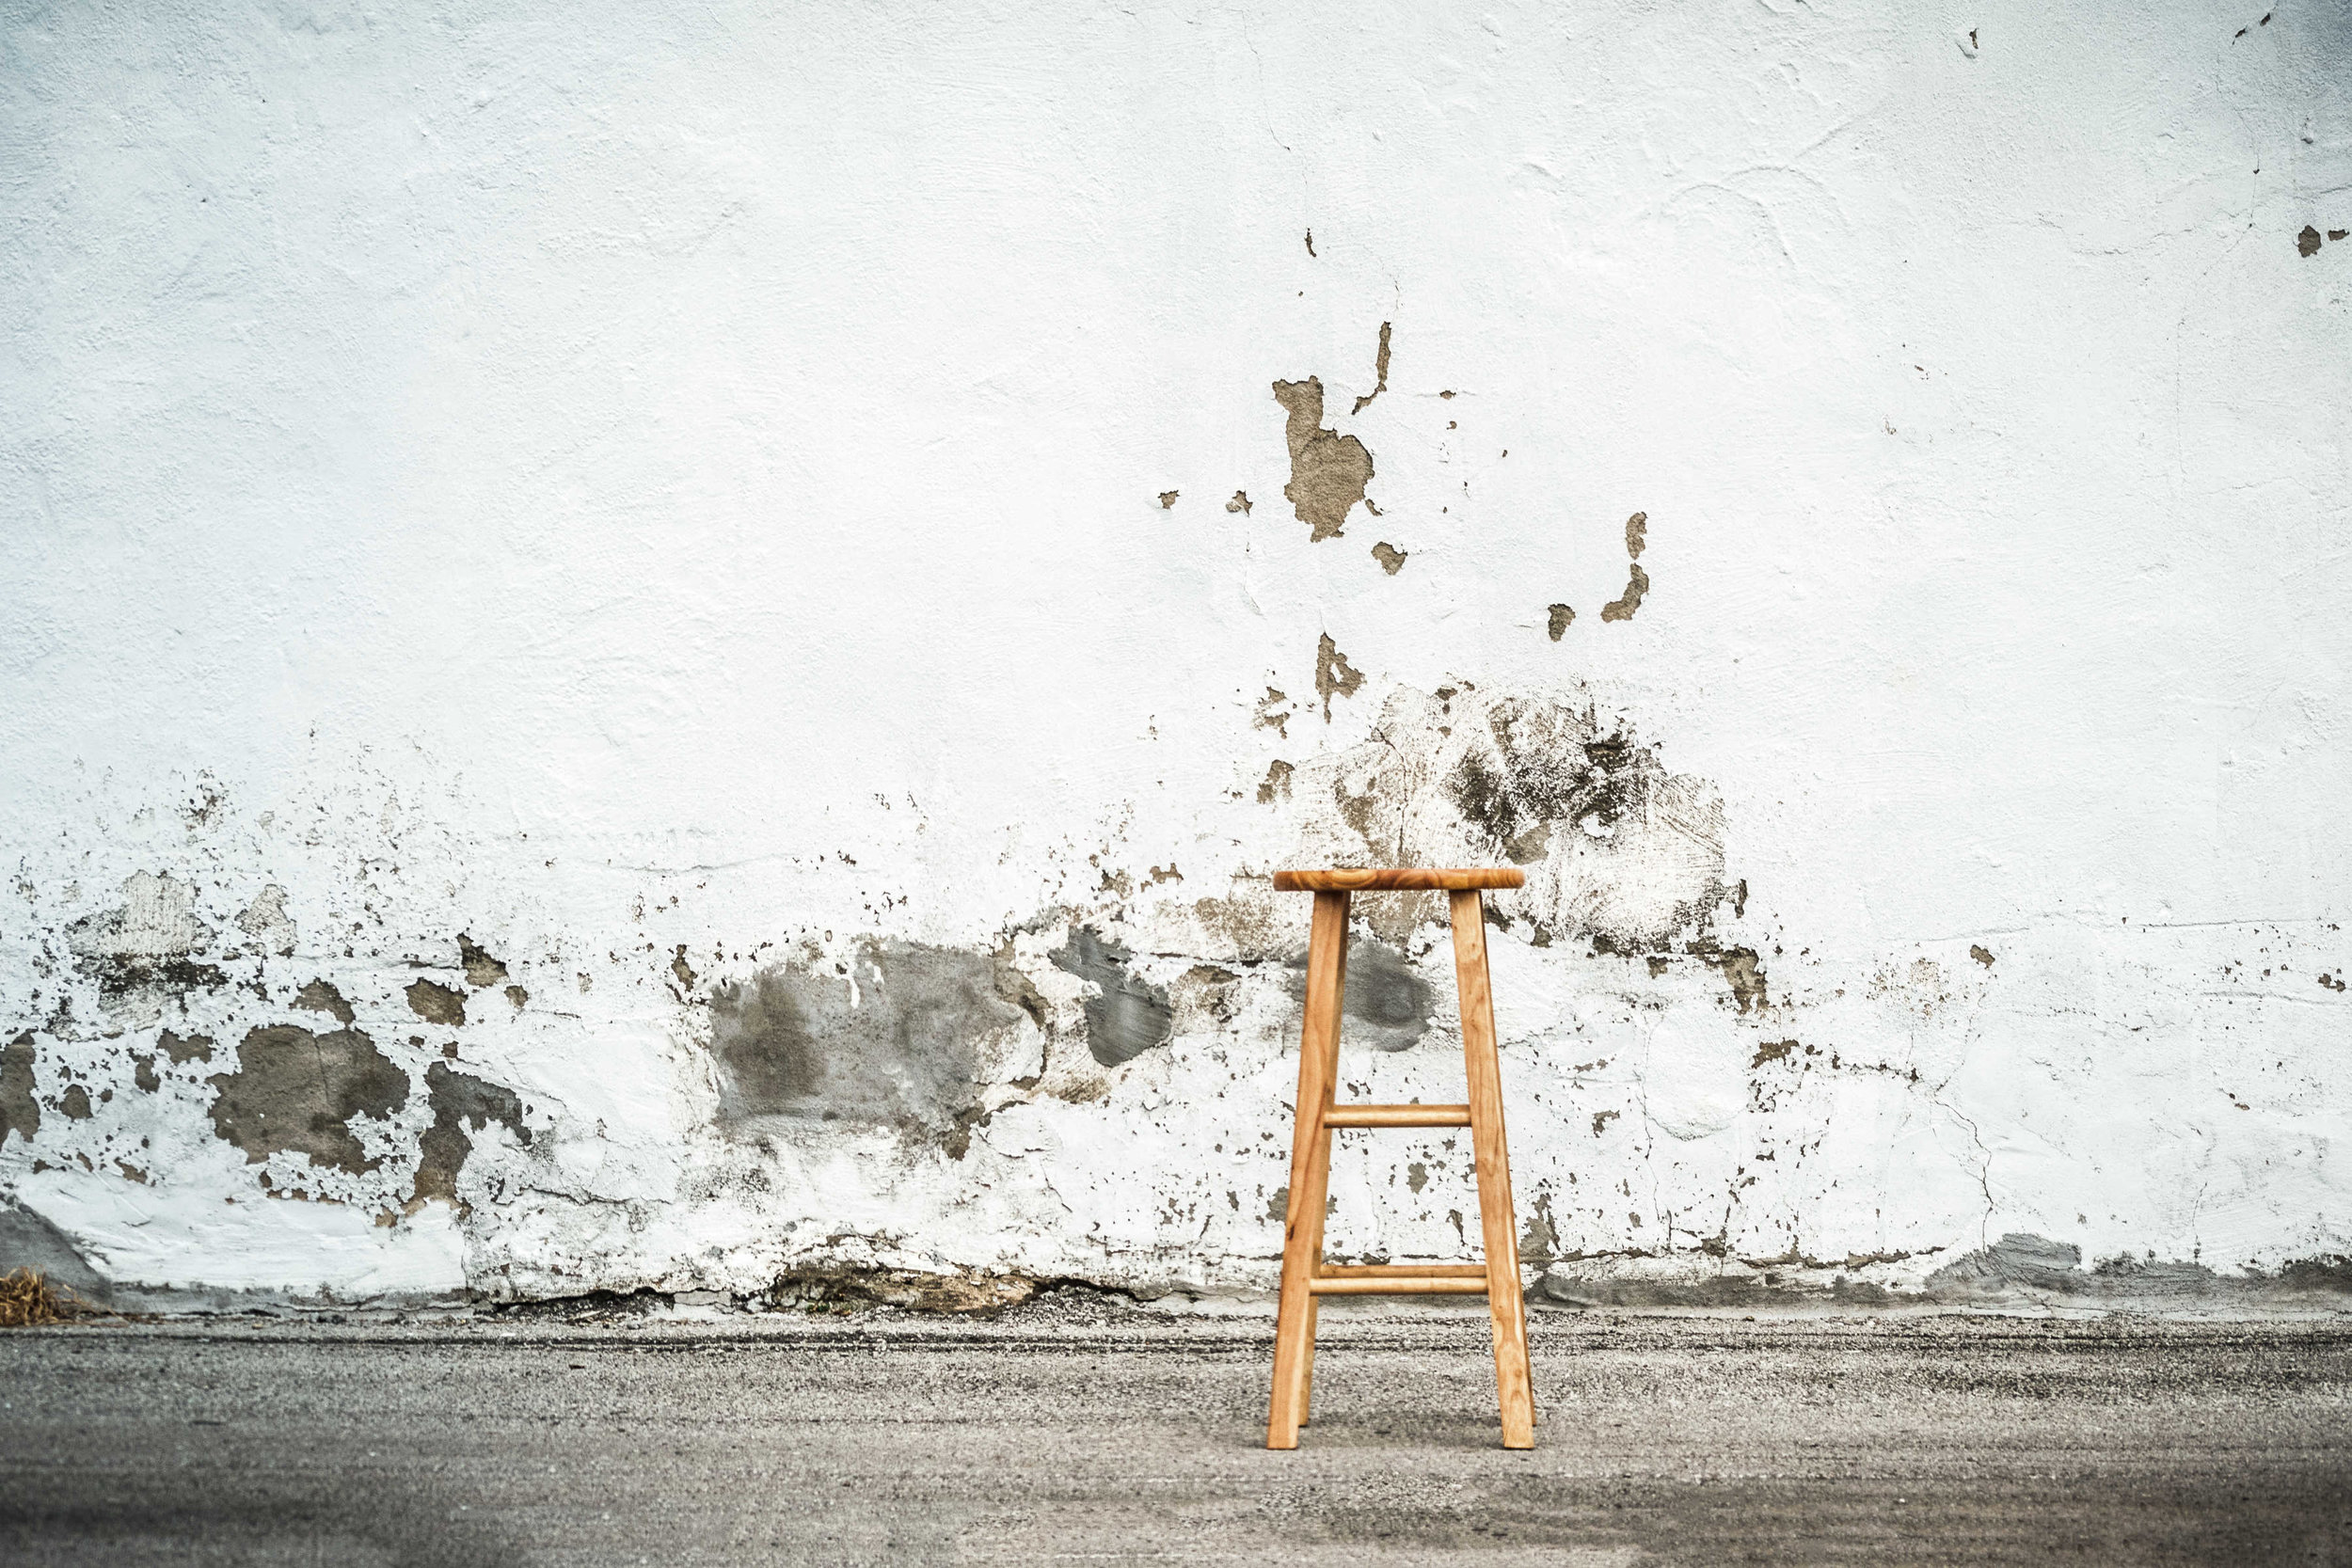 The Casting Point Of View - Often The Chair That The Director Sets in, is the point of view that is flawed.